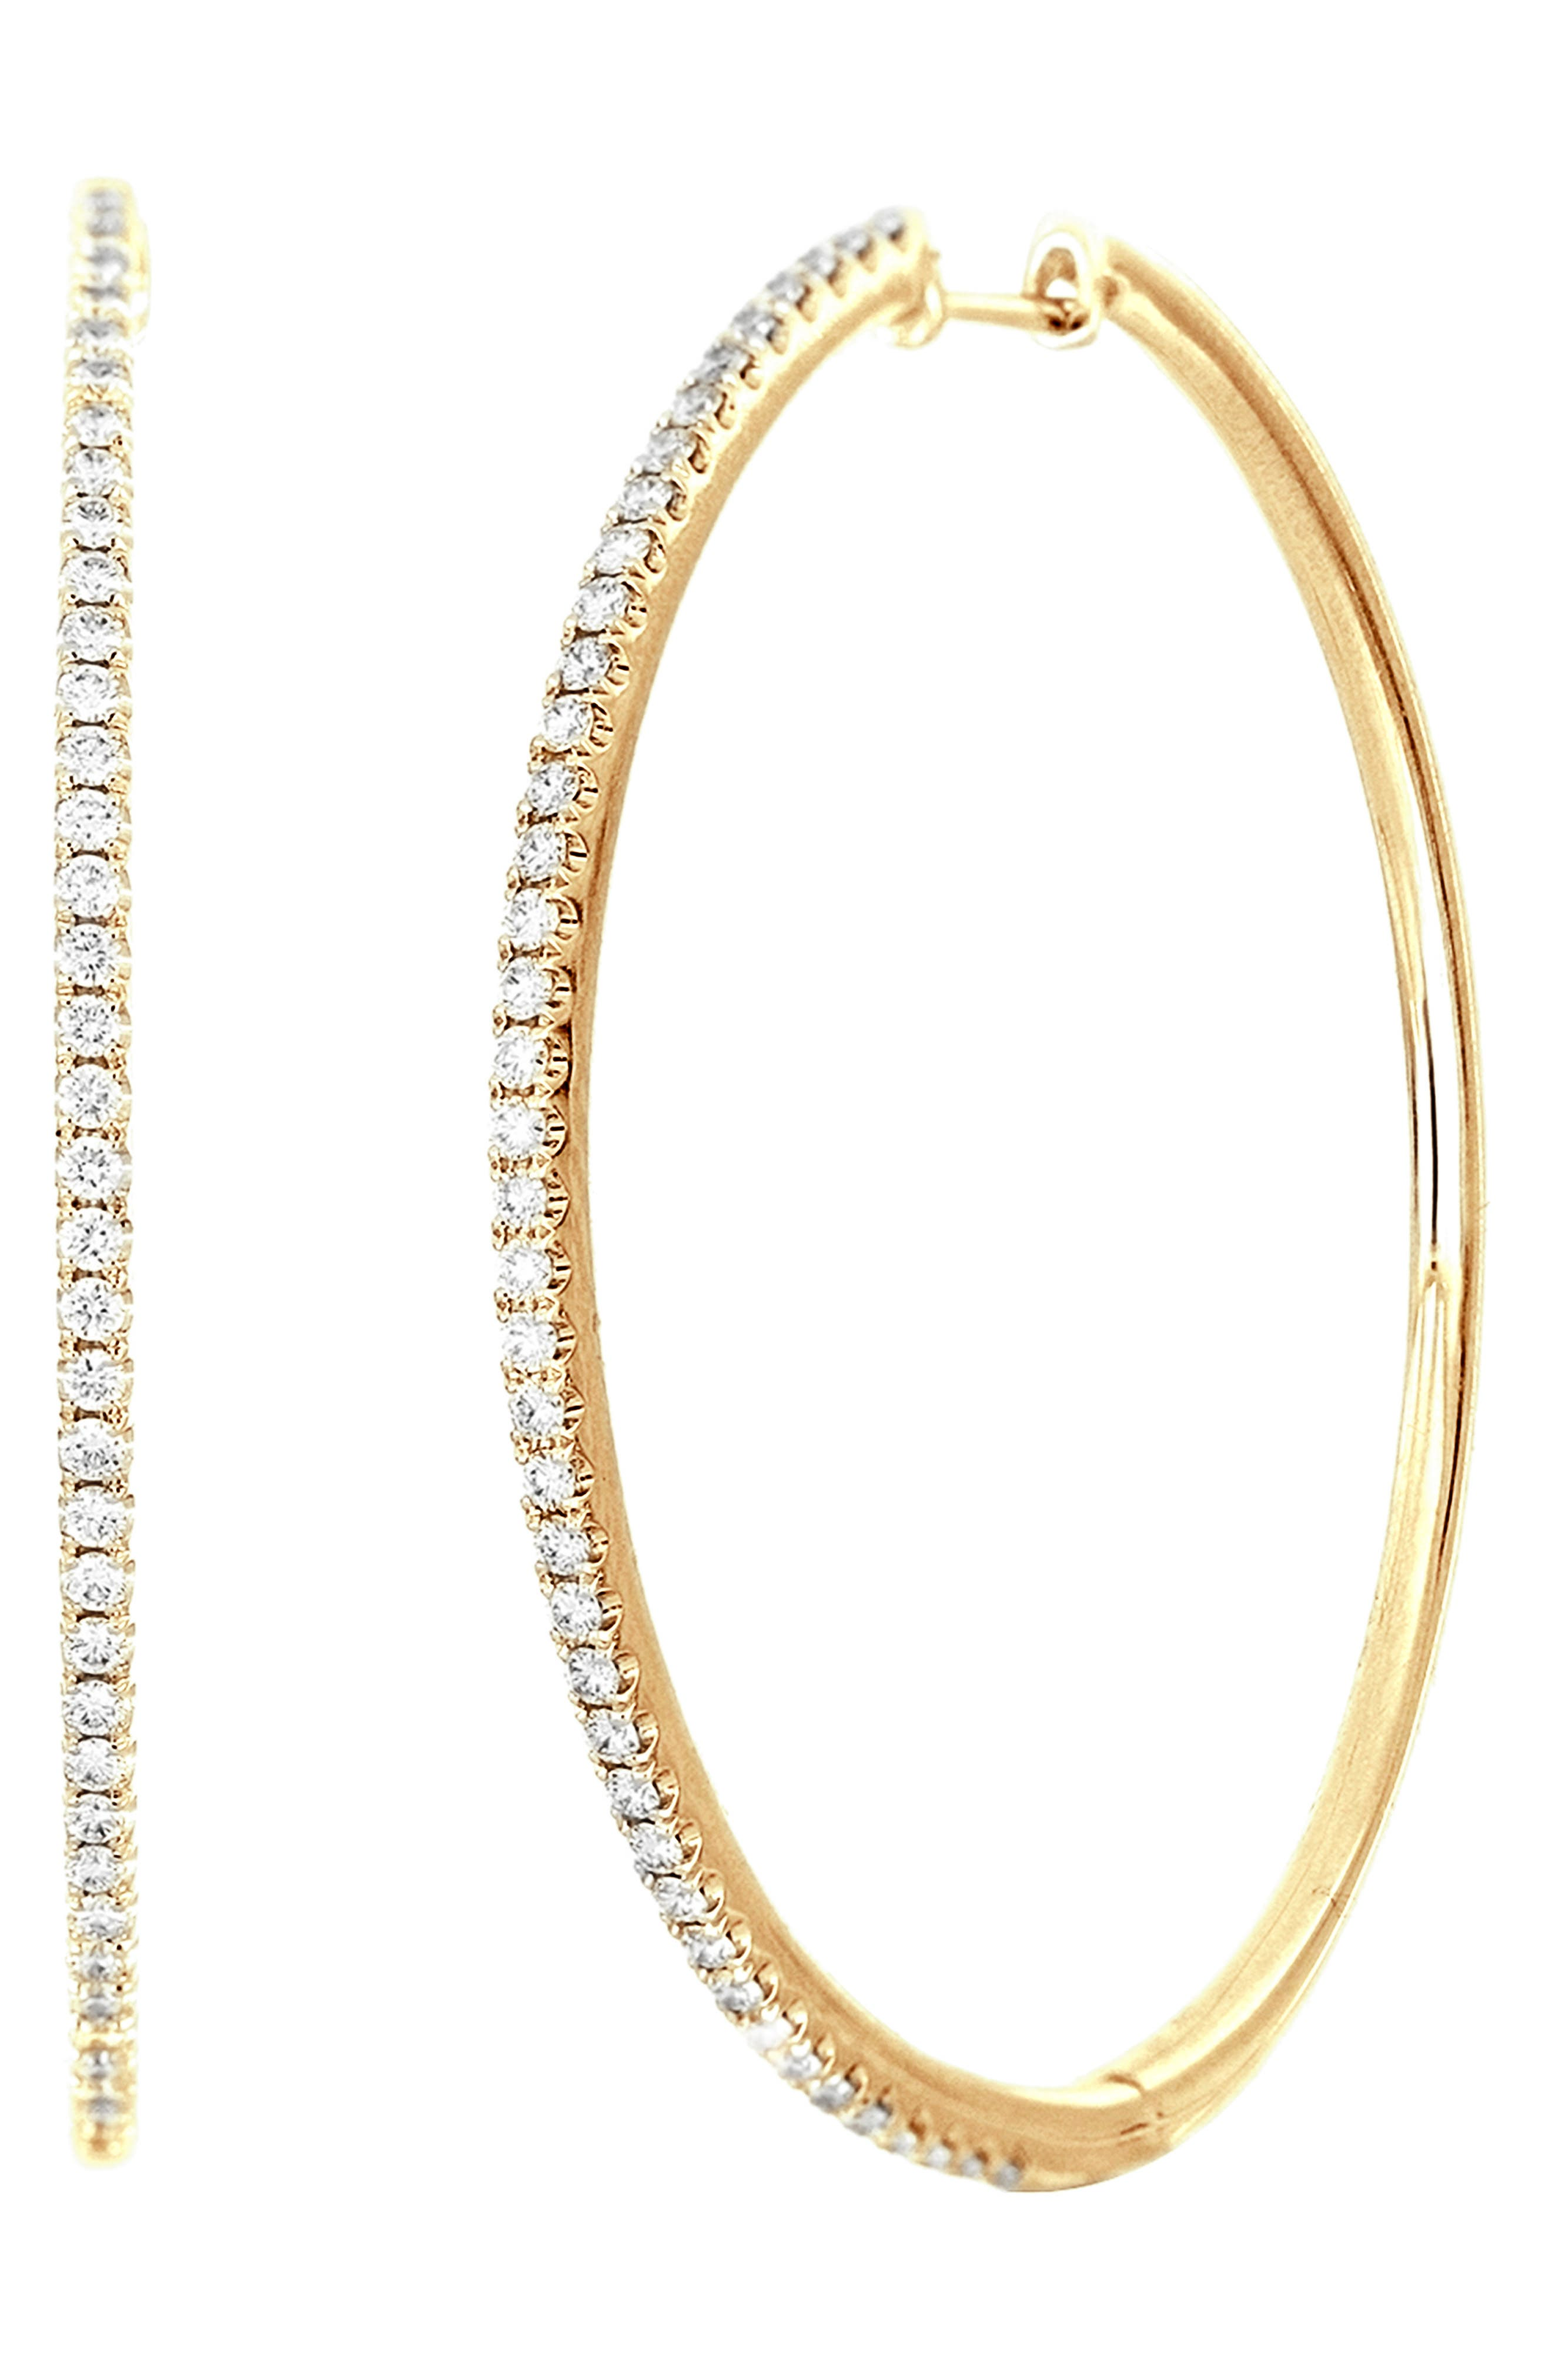 These timeless large hoops offer delicate shape and plenty of sparkle thanks to polished 18-karat gold and pave diamonds. Style Name: Bony Levy Bardot Diamond Hoop Earrings (Nordstrom Exclusive). Style Number: 6063820. Available in stores.